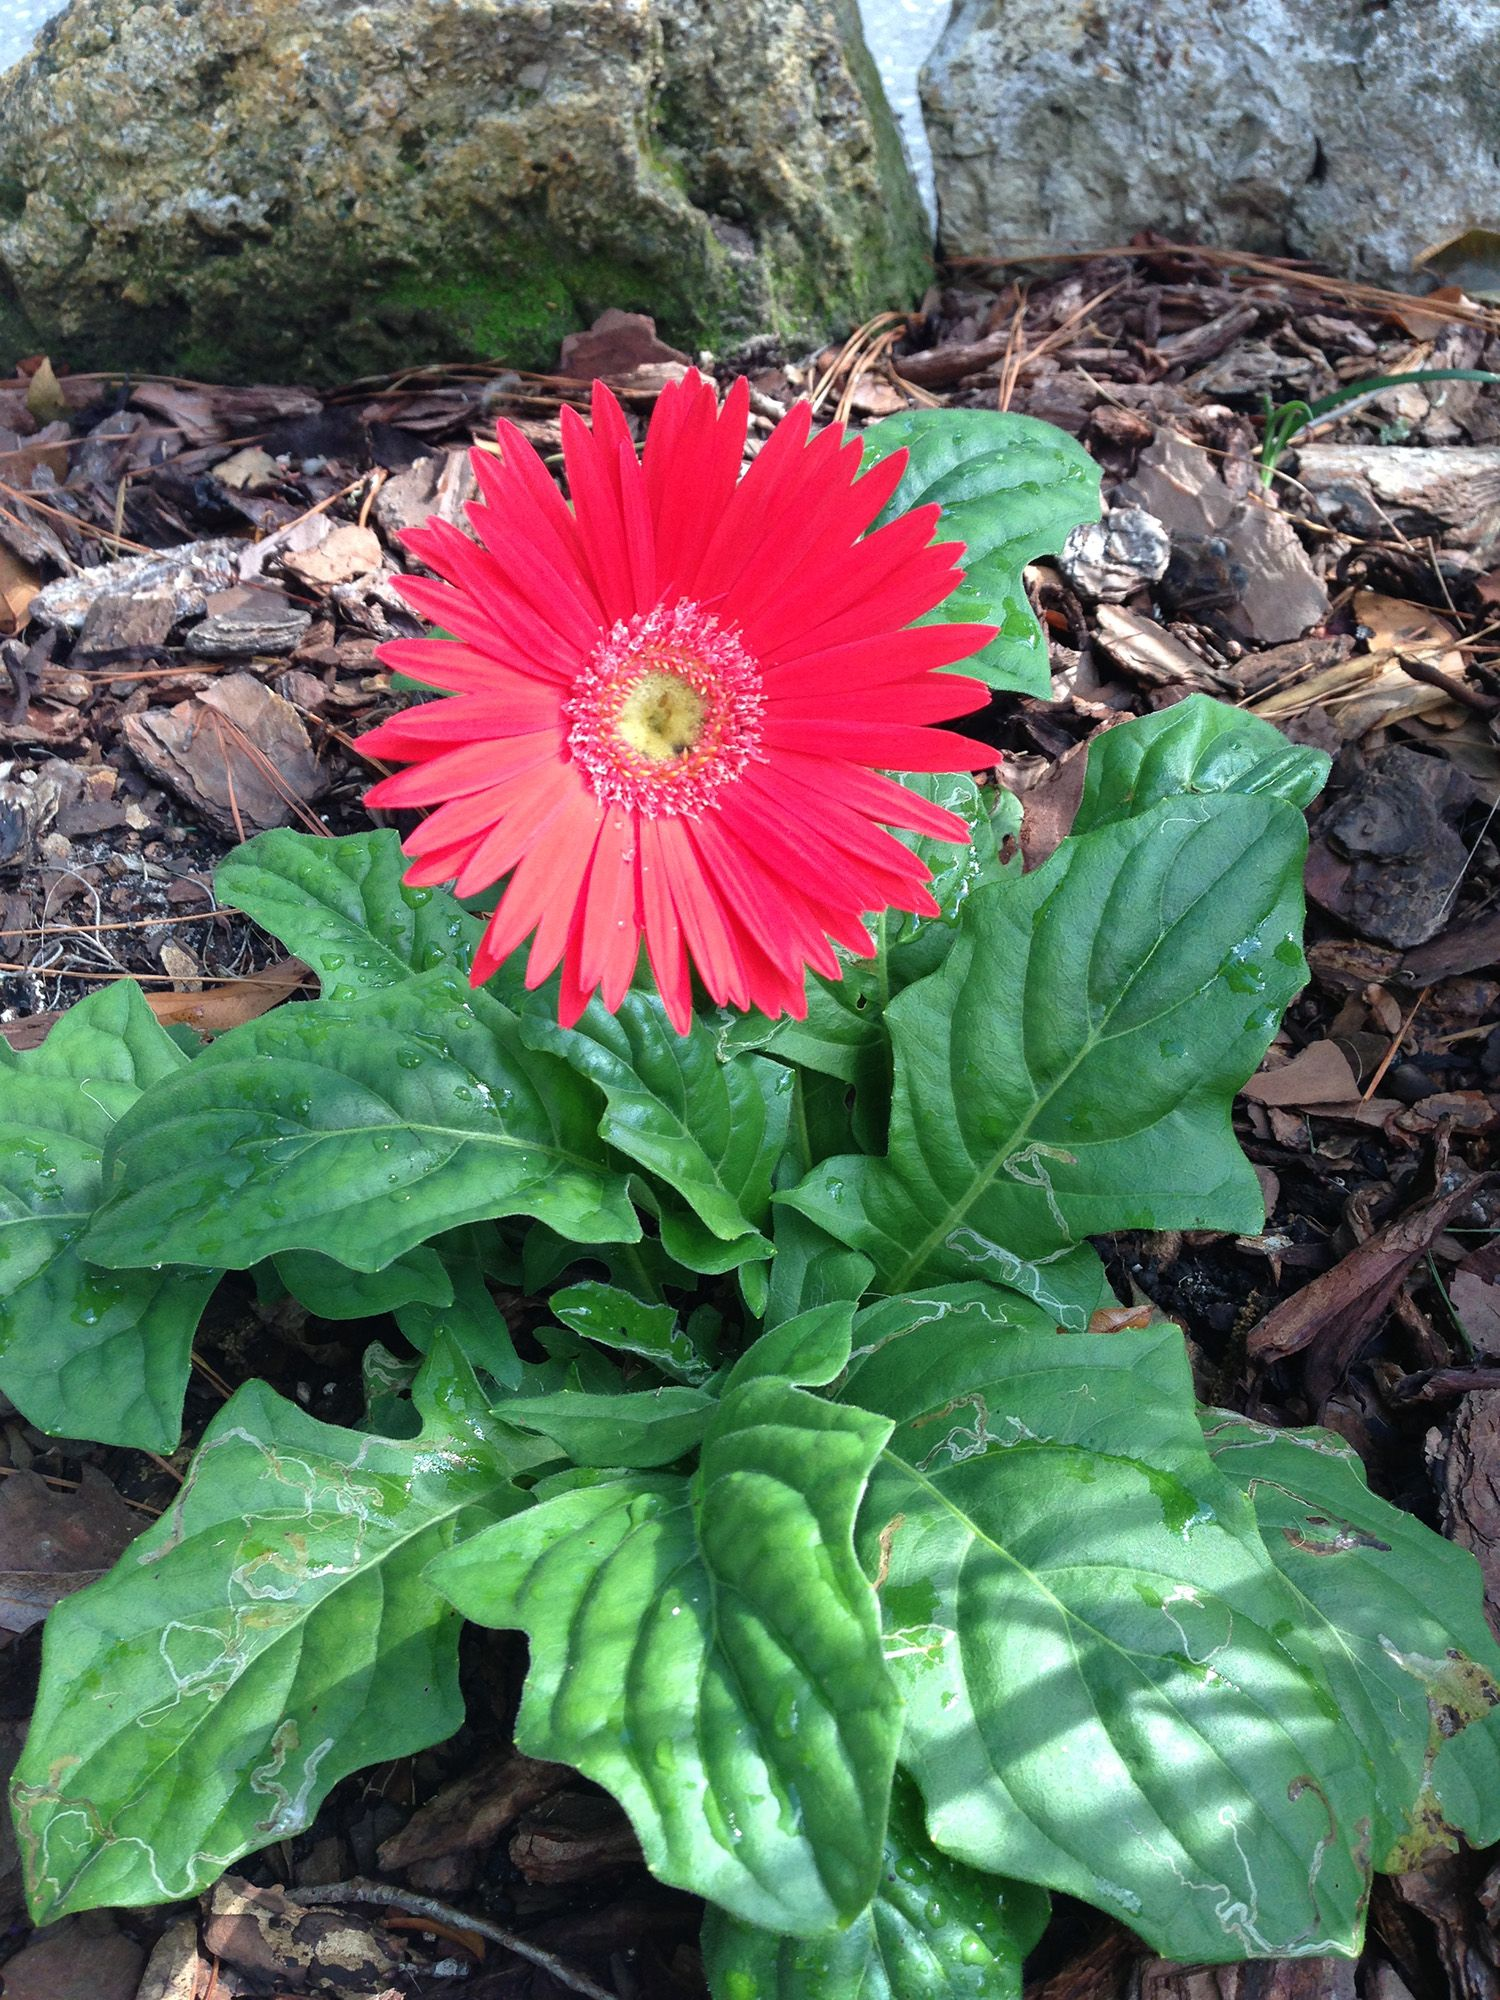 The gerbera daisy is known mainly in the us as a potted annual the gerbera daisy is known mainly in the us as a potted annual but florida gardeners can plants these bright flowers as a perennial izmirmasajfo